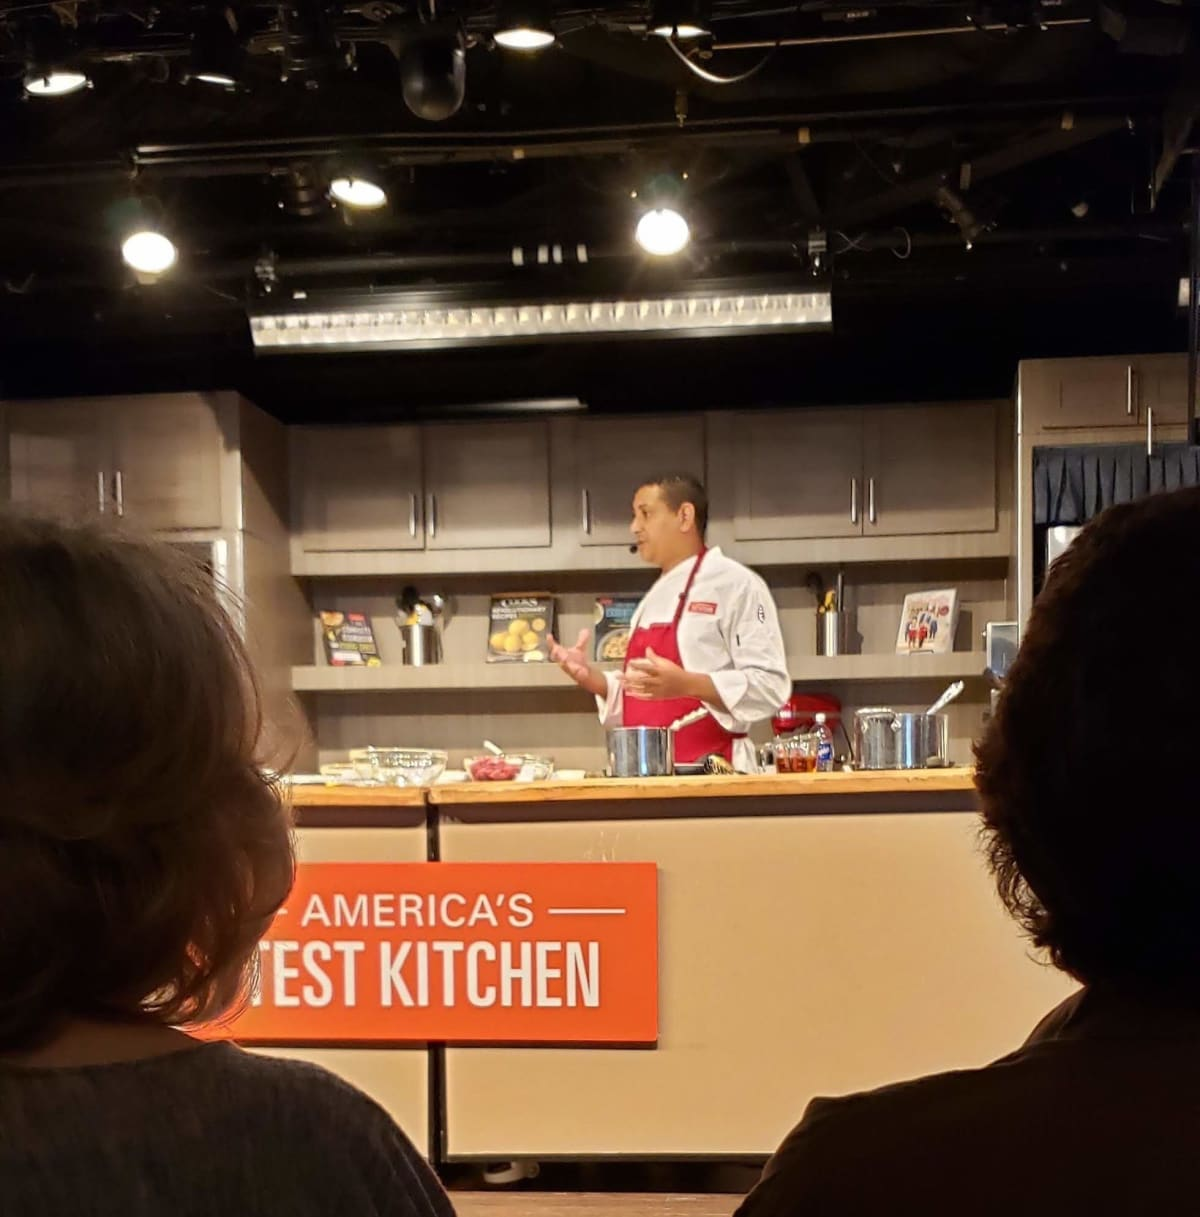 HALのお料理ショー:「America's Test Kitchen」